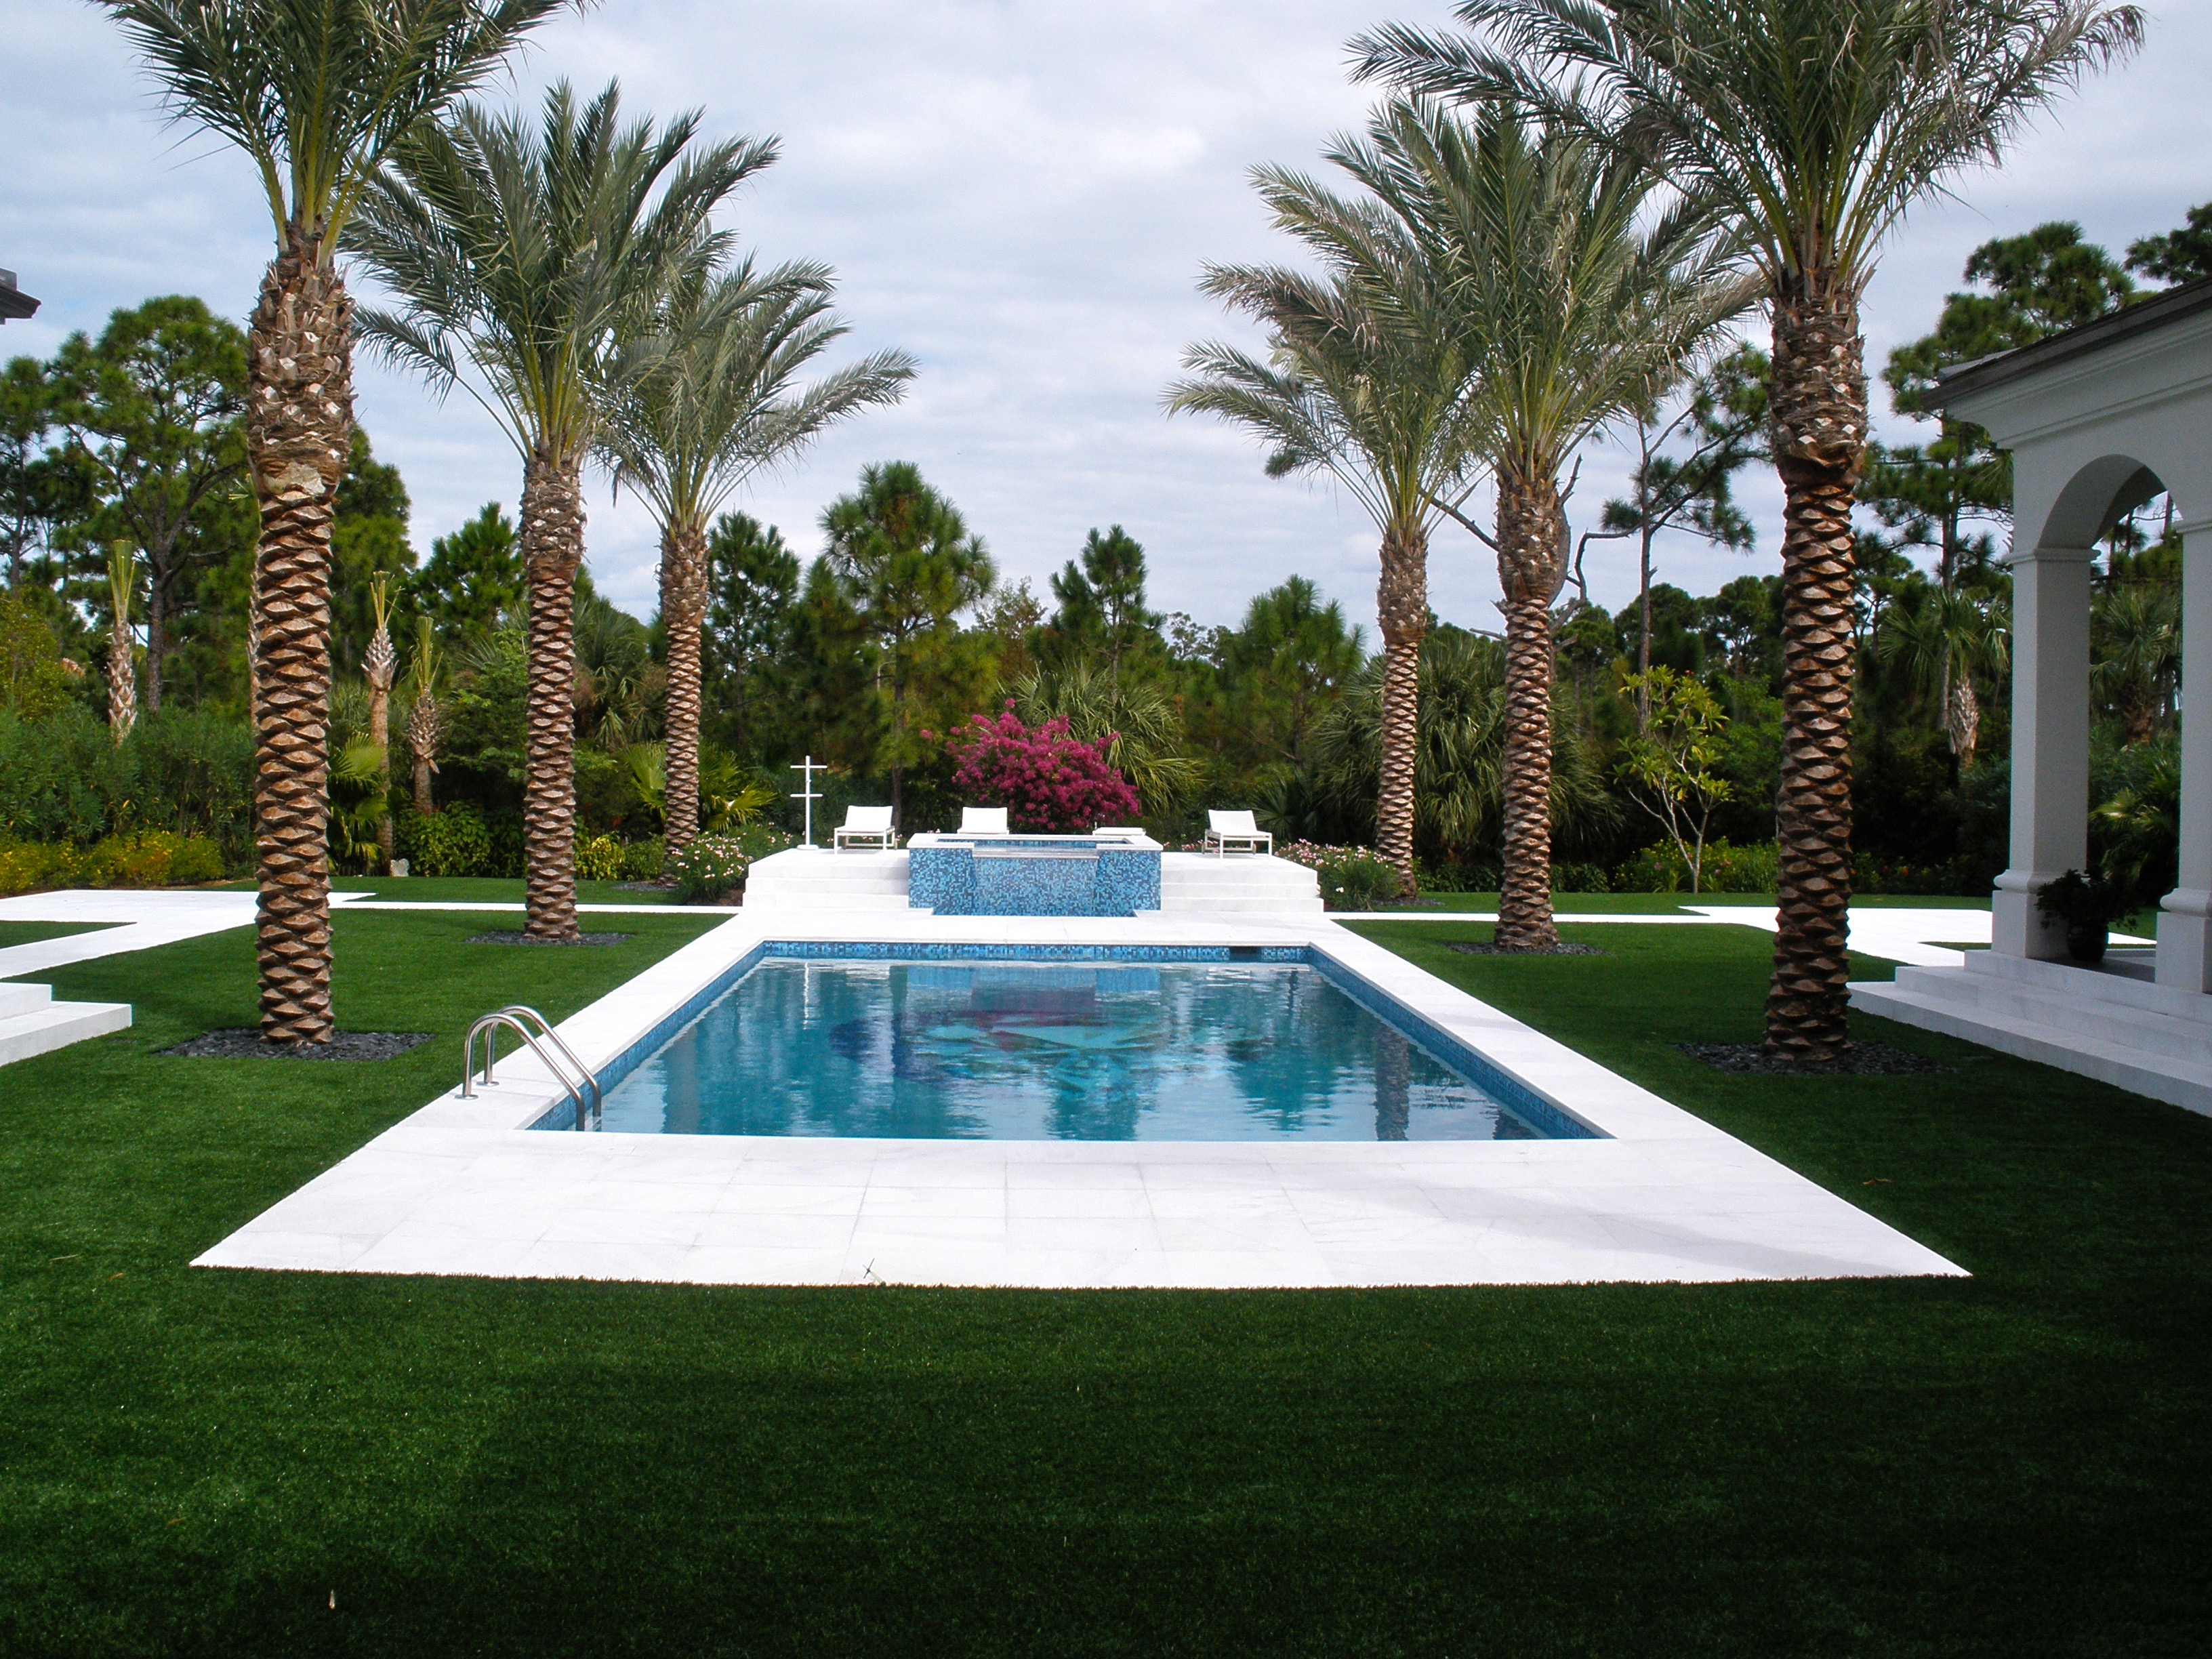 Where can I get good artificial grass west palm beach?